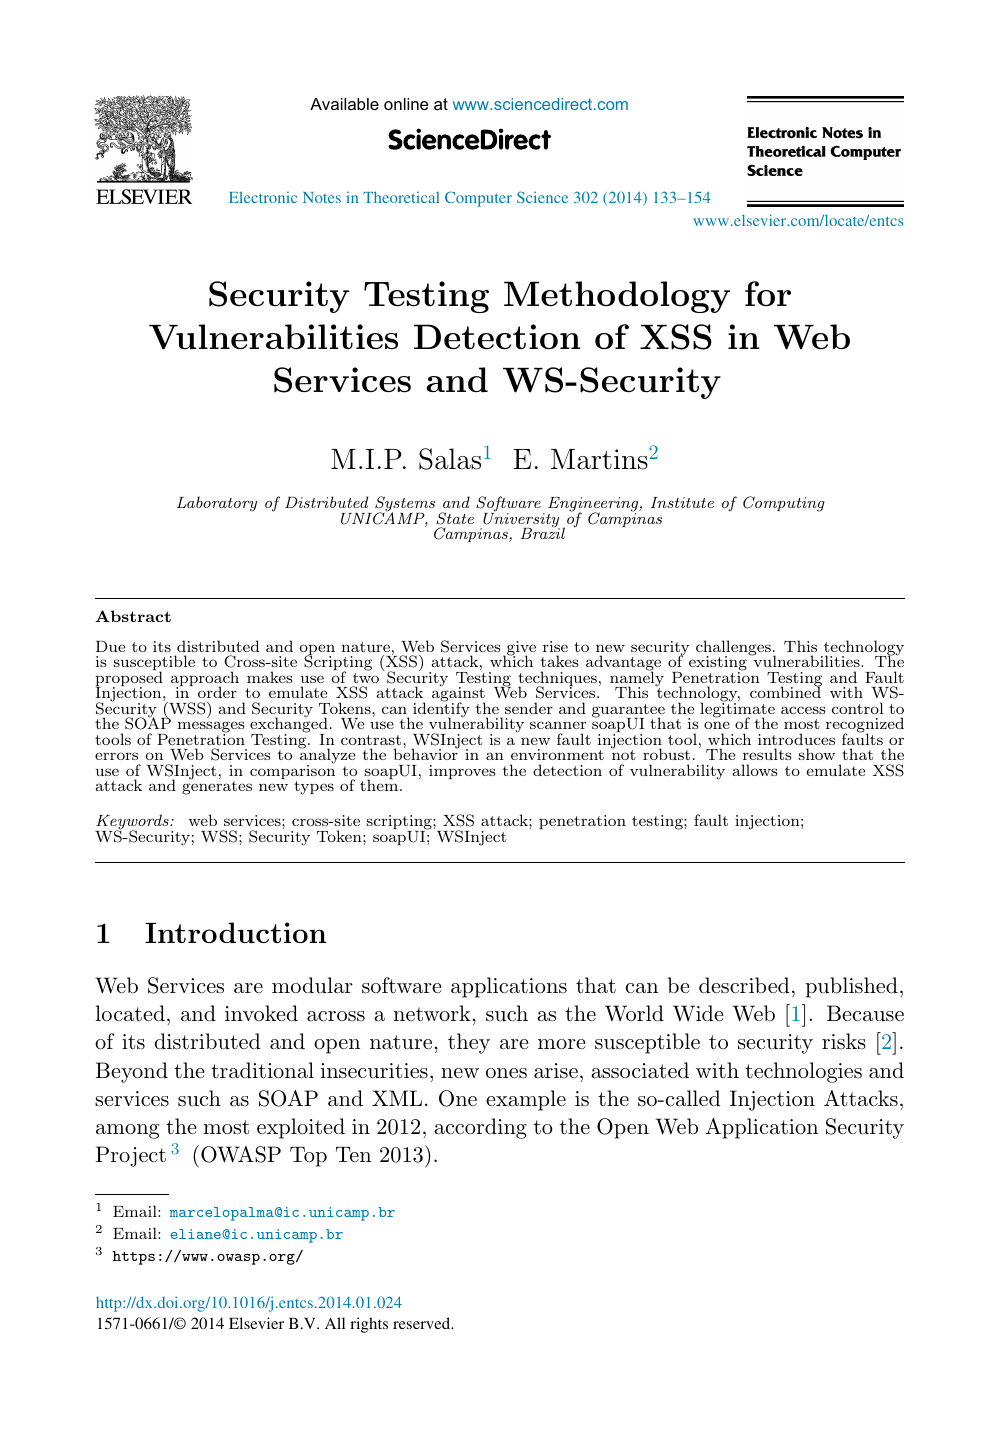 Security Testing Methodology for Vulnerabilities Detection